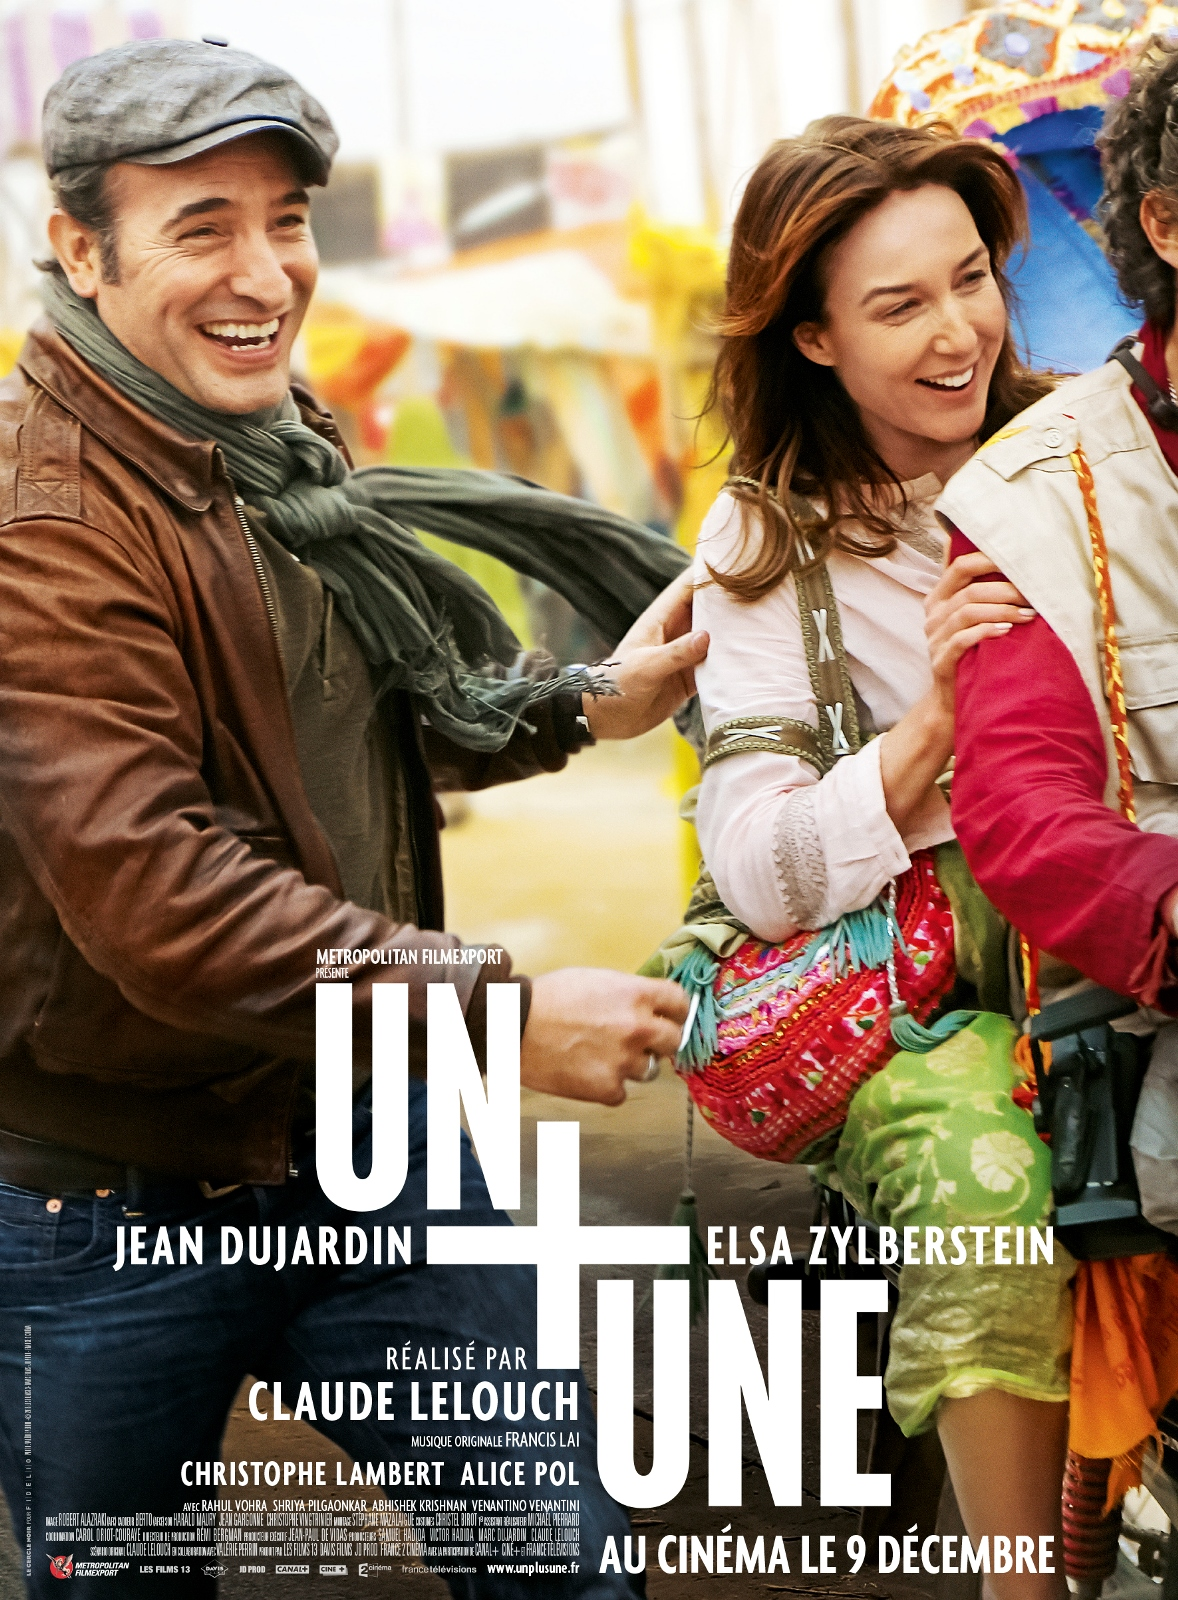 Un une film 2015 allocin for Film 2016 jean dujardin